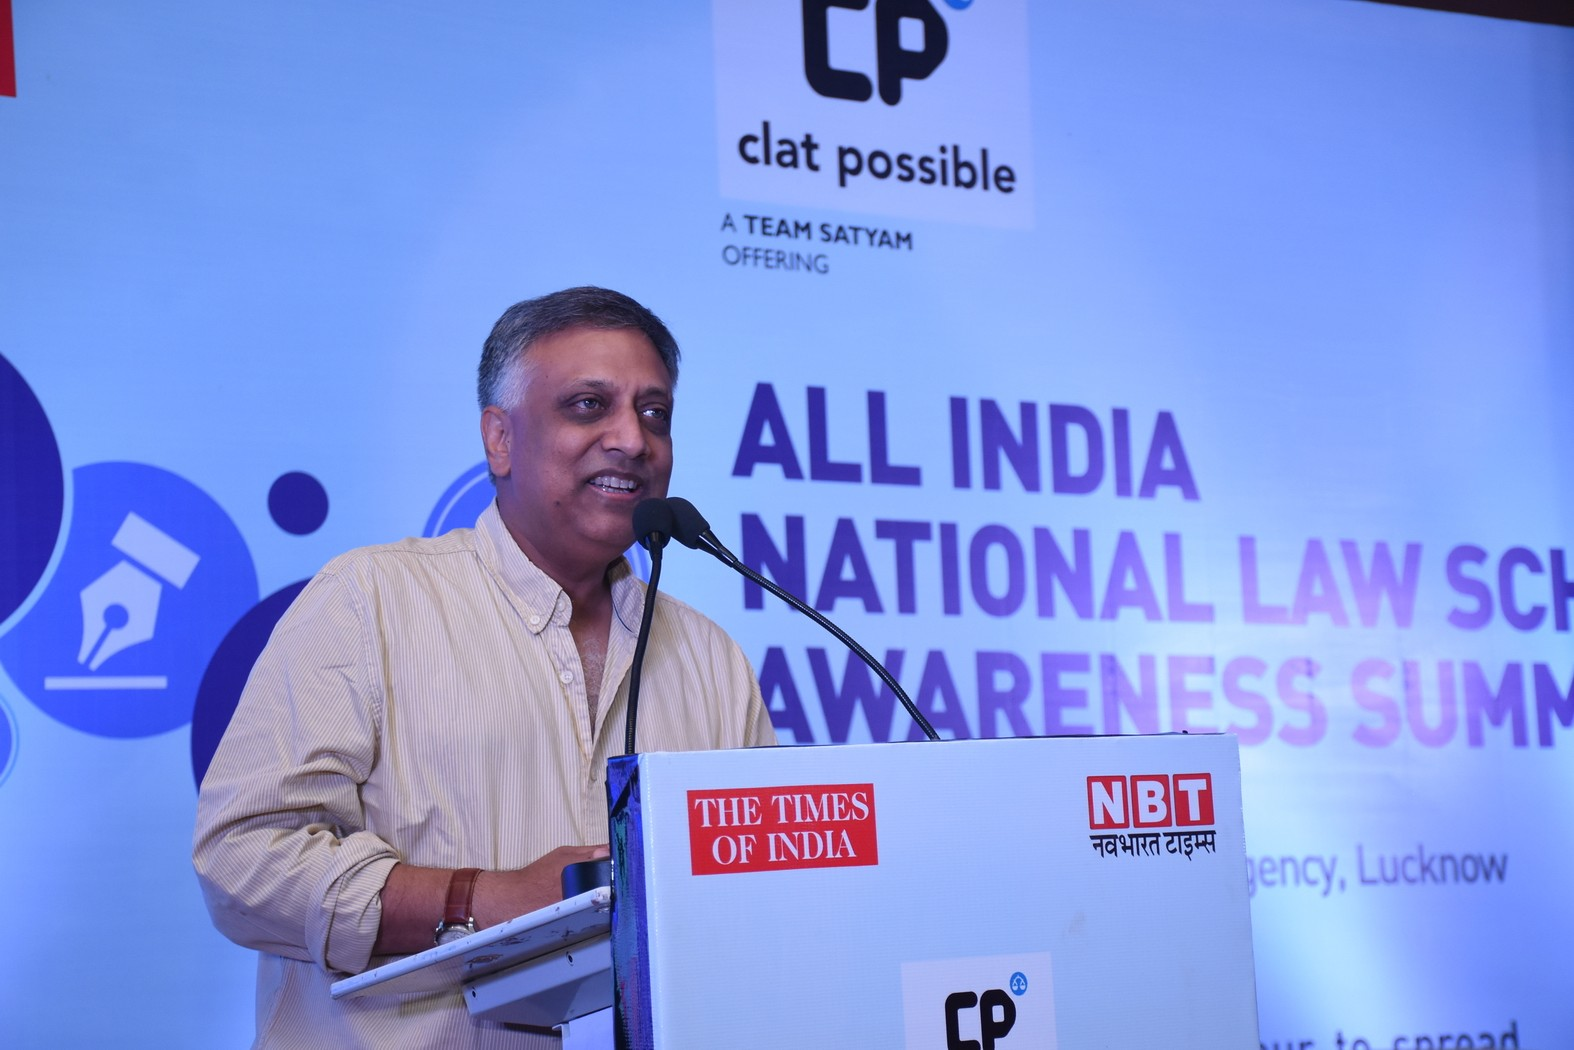 All India National Law School Awareness Summit